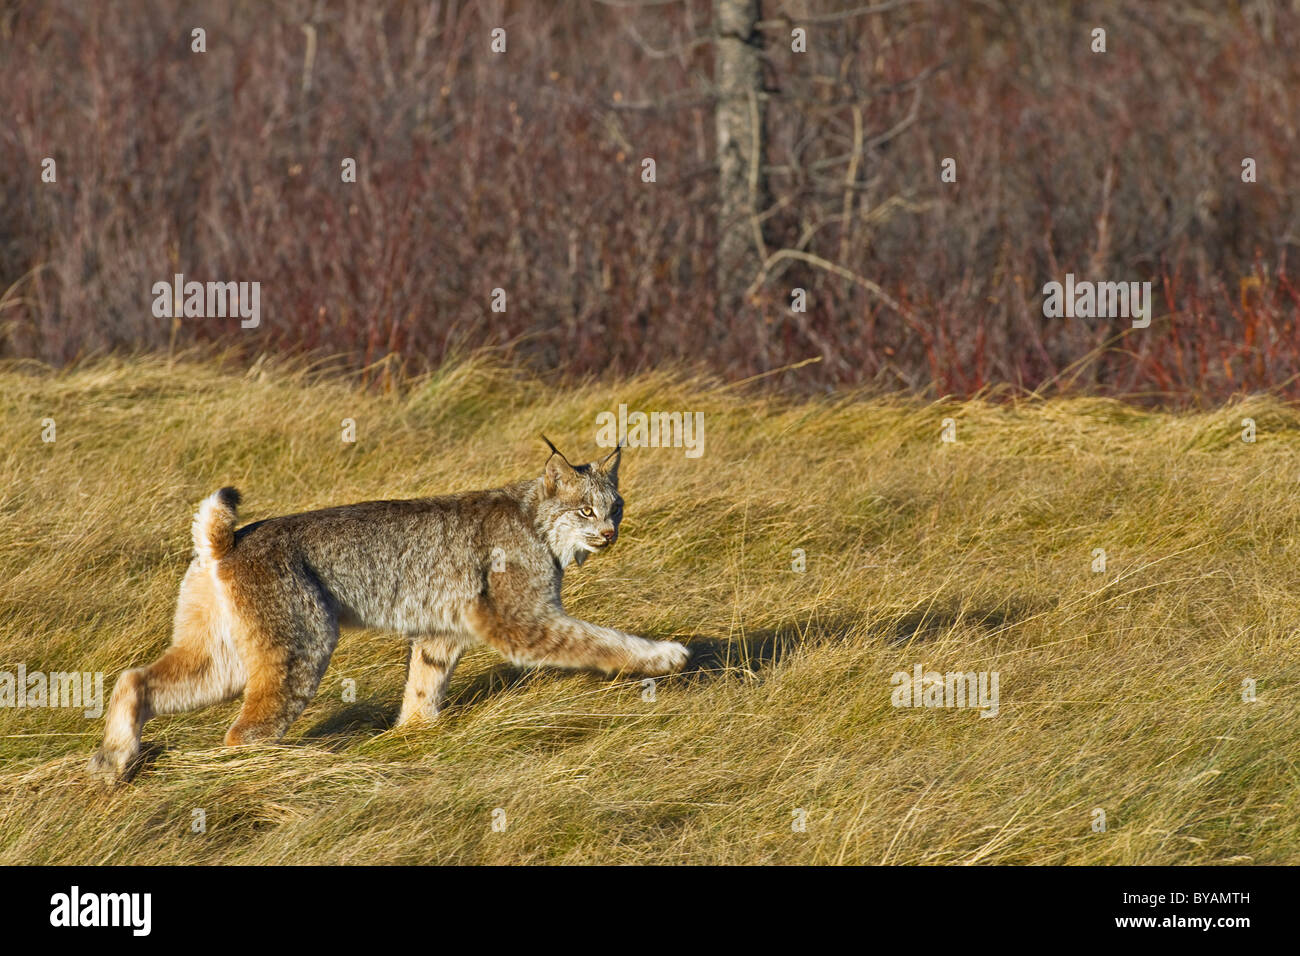 A Canadian Lynx walking through the tall grass. - Stock Image